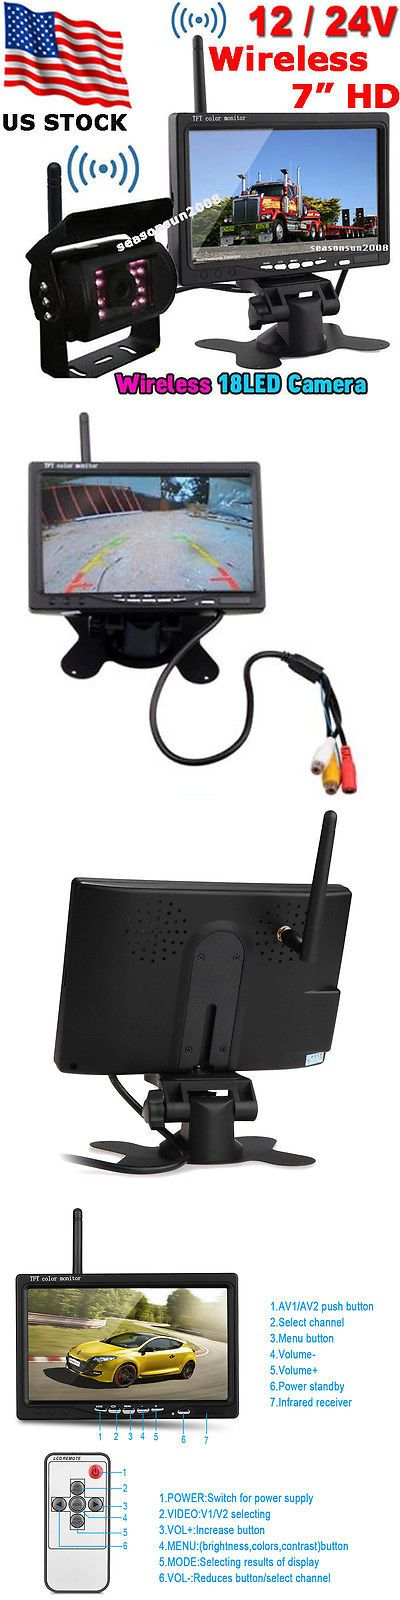 Car Monitors w o Player: 24V 7 Wireless Reverse Rear View Monitor+18Leds Ir Backup Camera For Bus Truck -> BUY IT NOW ONLY: $69.99 on eBay!